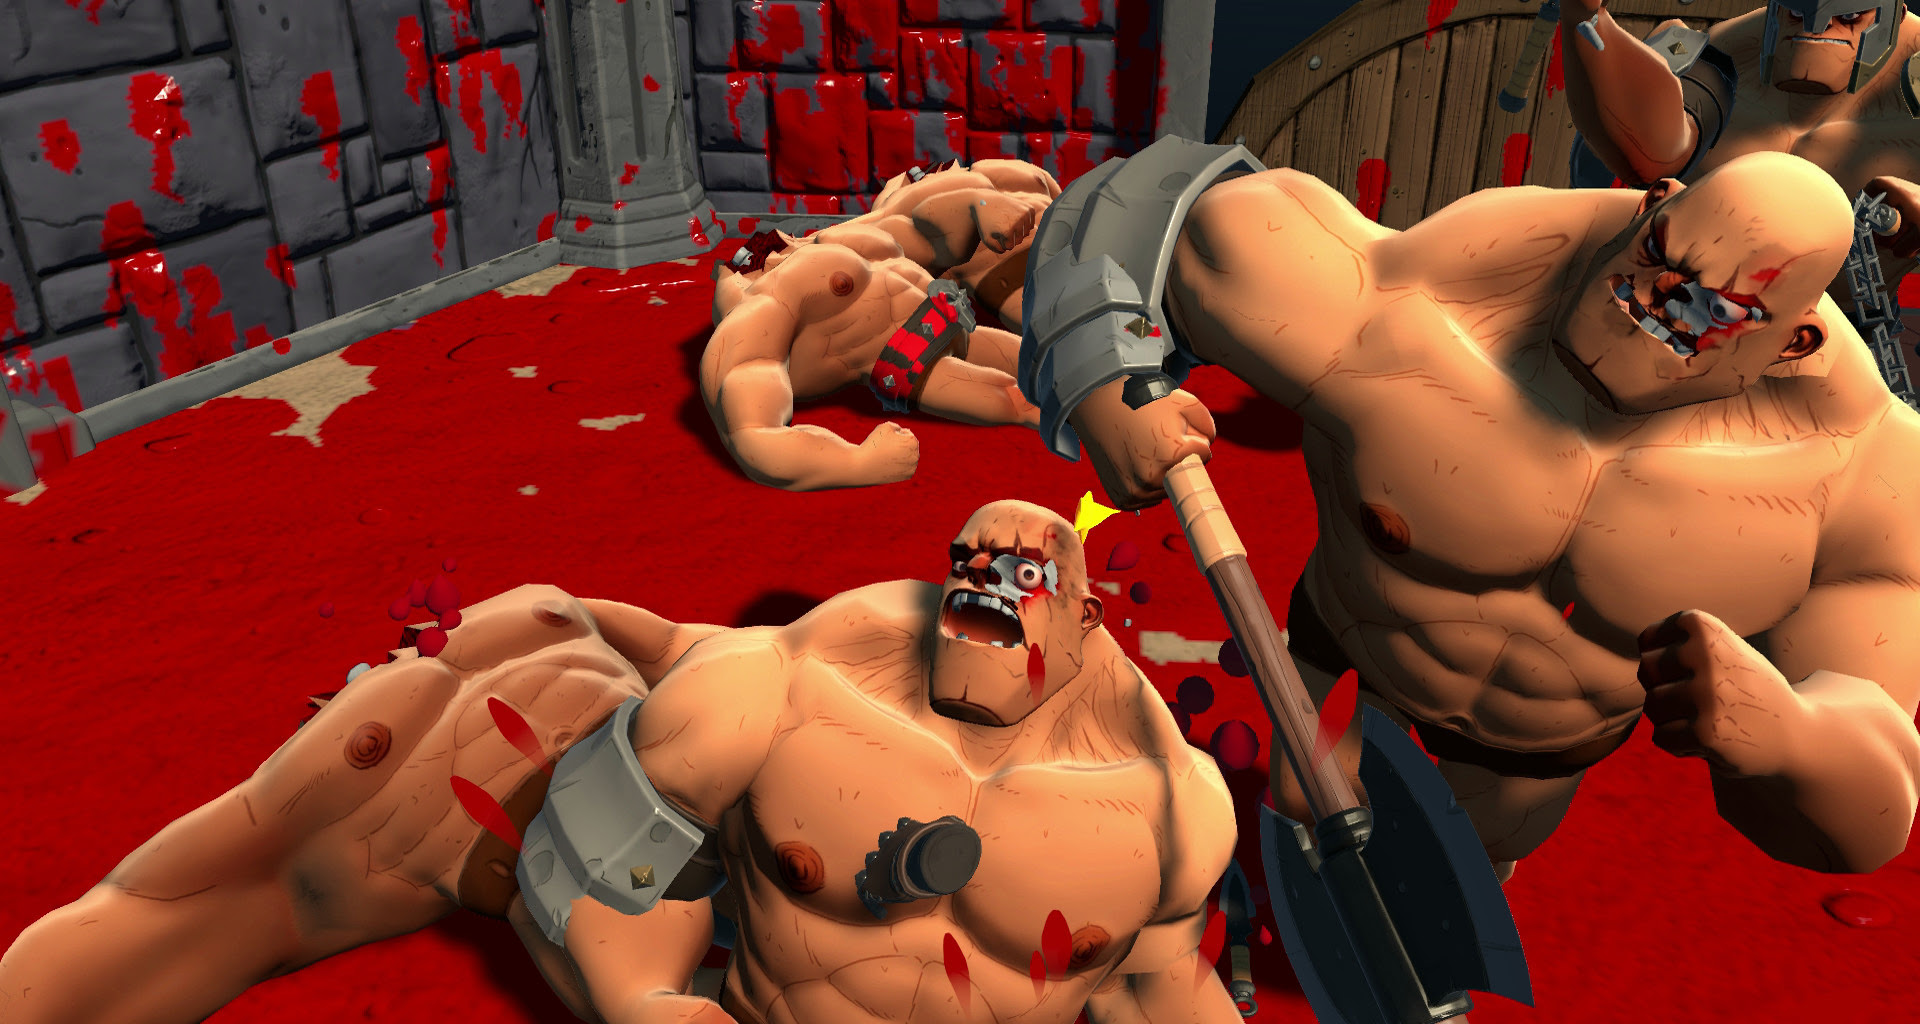 Gorn is the perfect name for this ridiculous gladiator sim screenshot